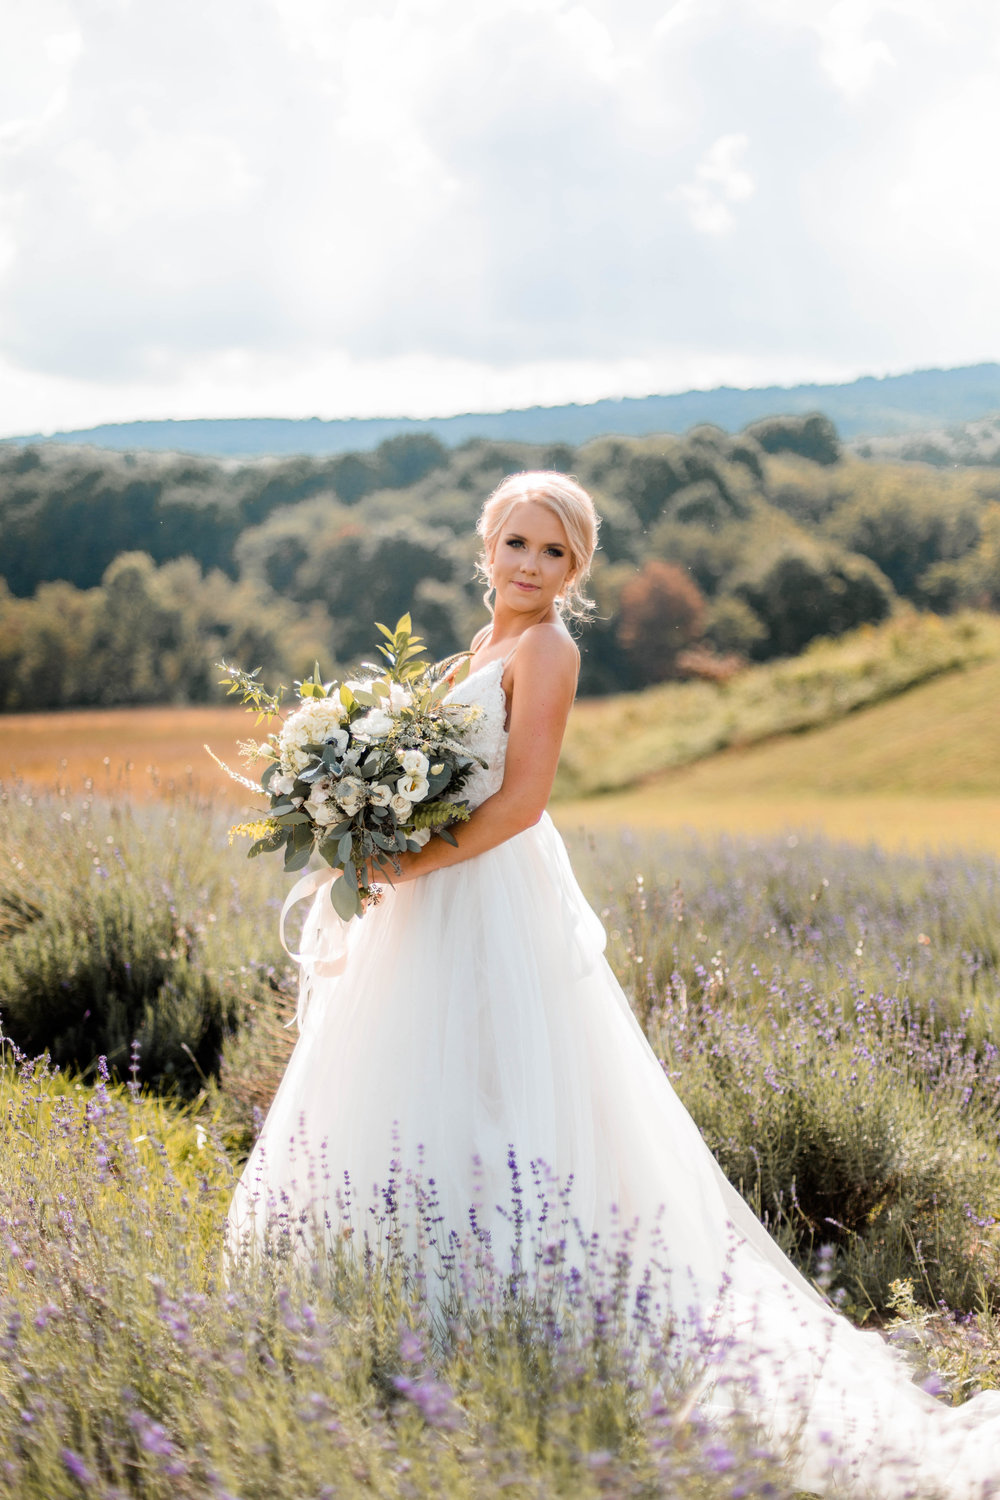 nicole-daacke-photography-intimate-wedding-in-a-lavender-field-washington-state-wedding-photographer-intimate-elopement-golden-lavender-field-wedding-photos-27.jpg